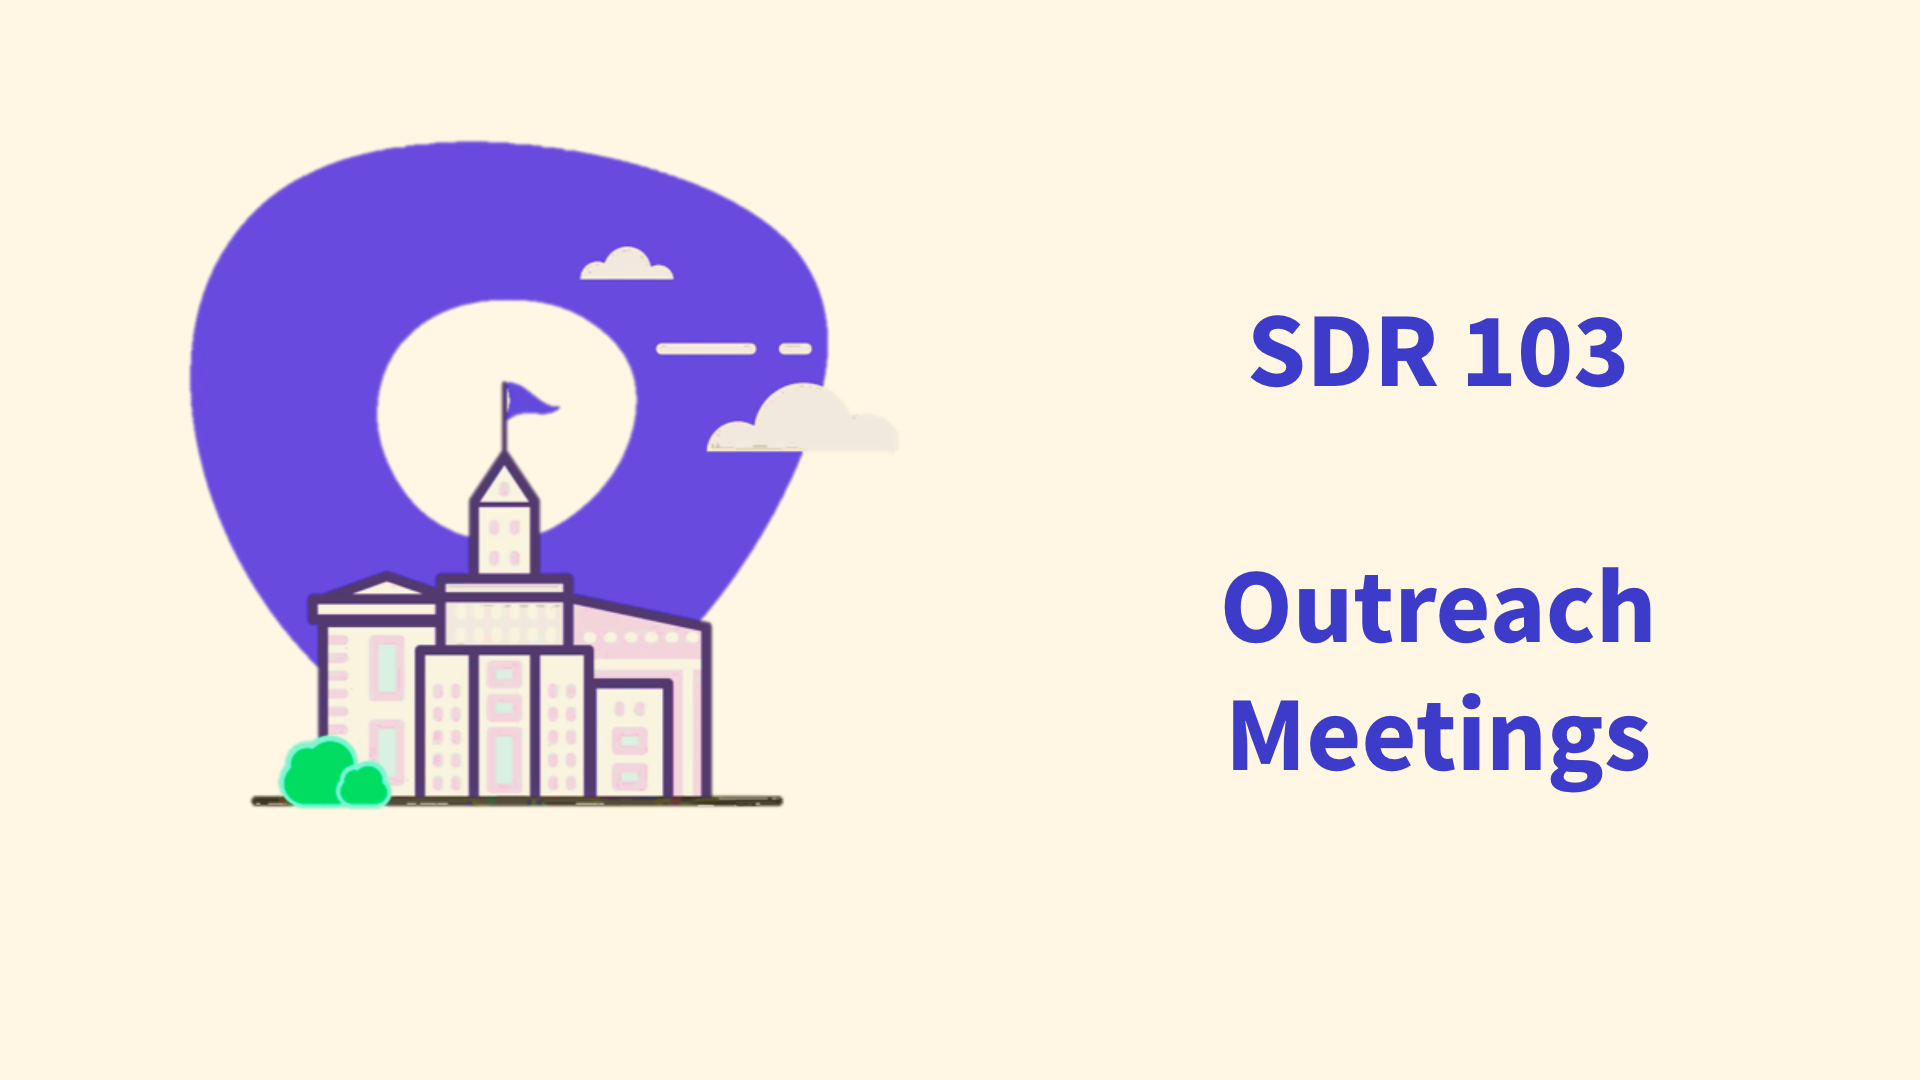 SDR 103 - Outreach Meetings